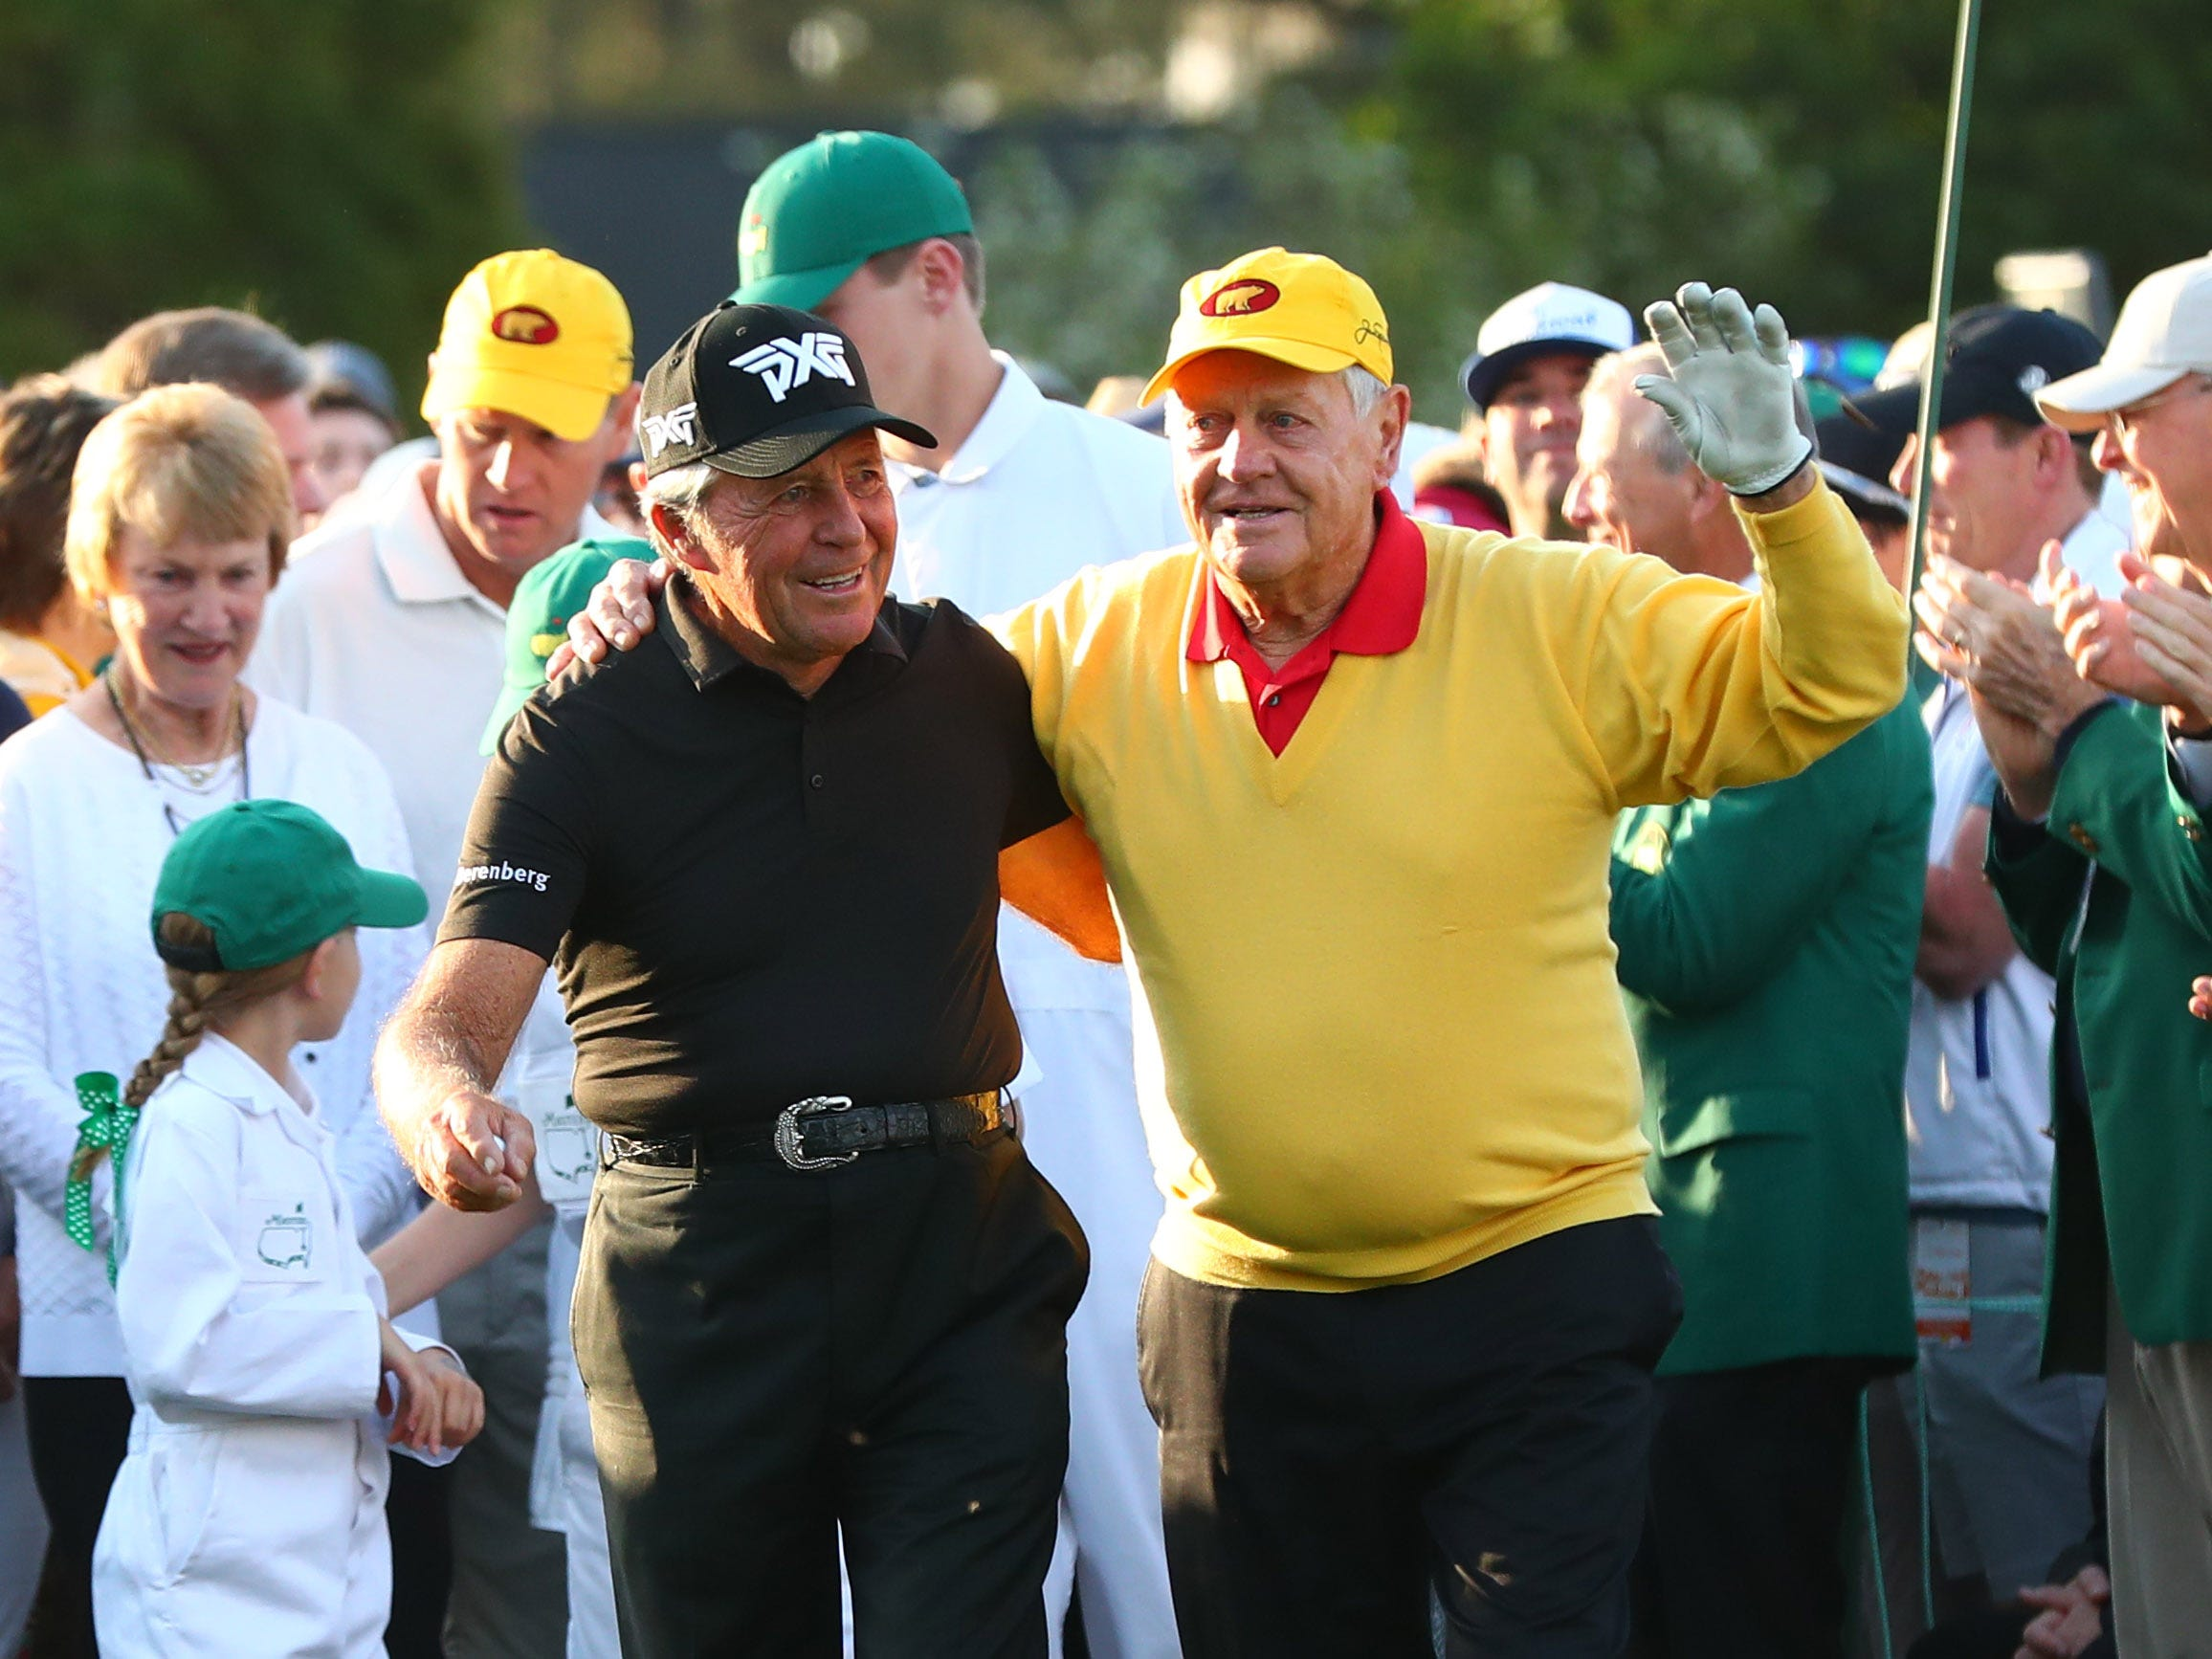 Honorary starters Gary Player and Jack Nicklaus walk to the first tee at the Masters.